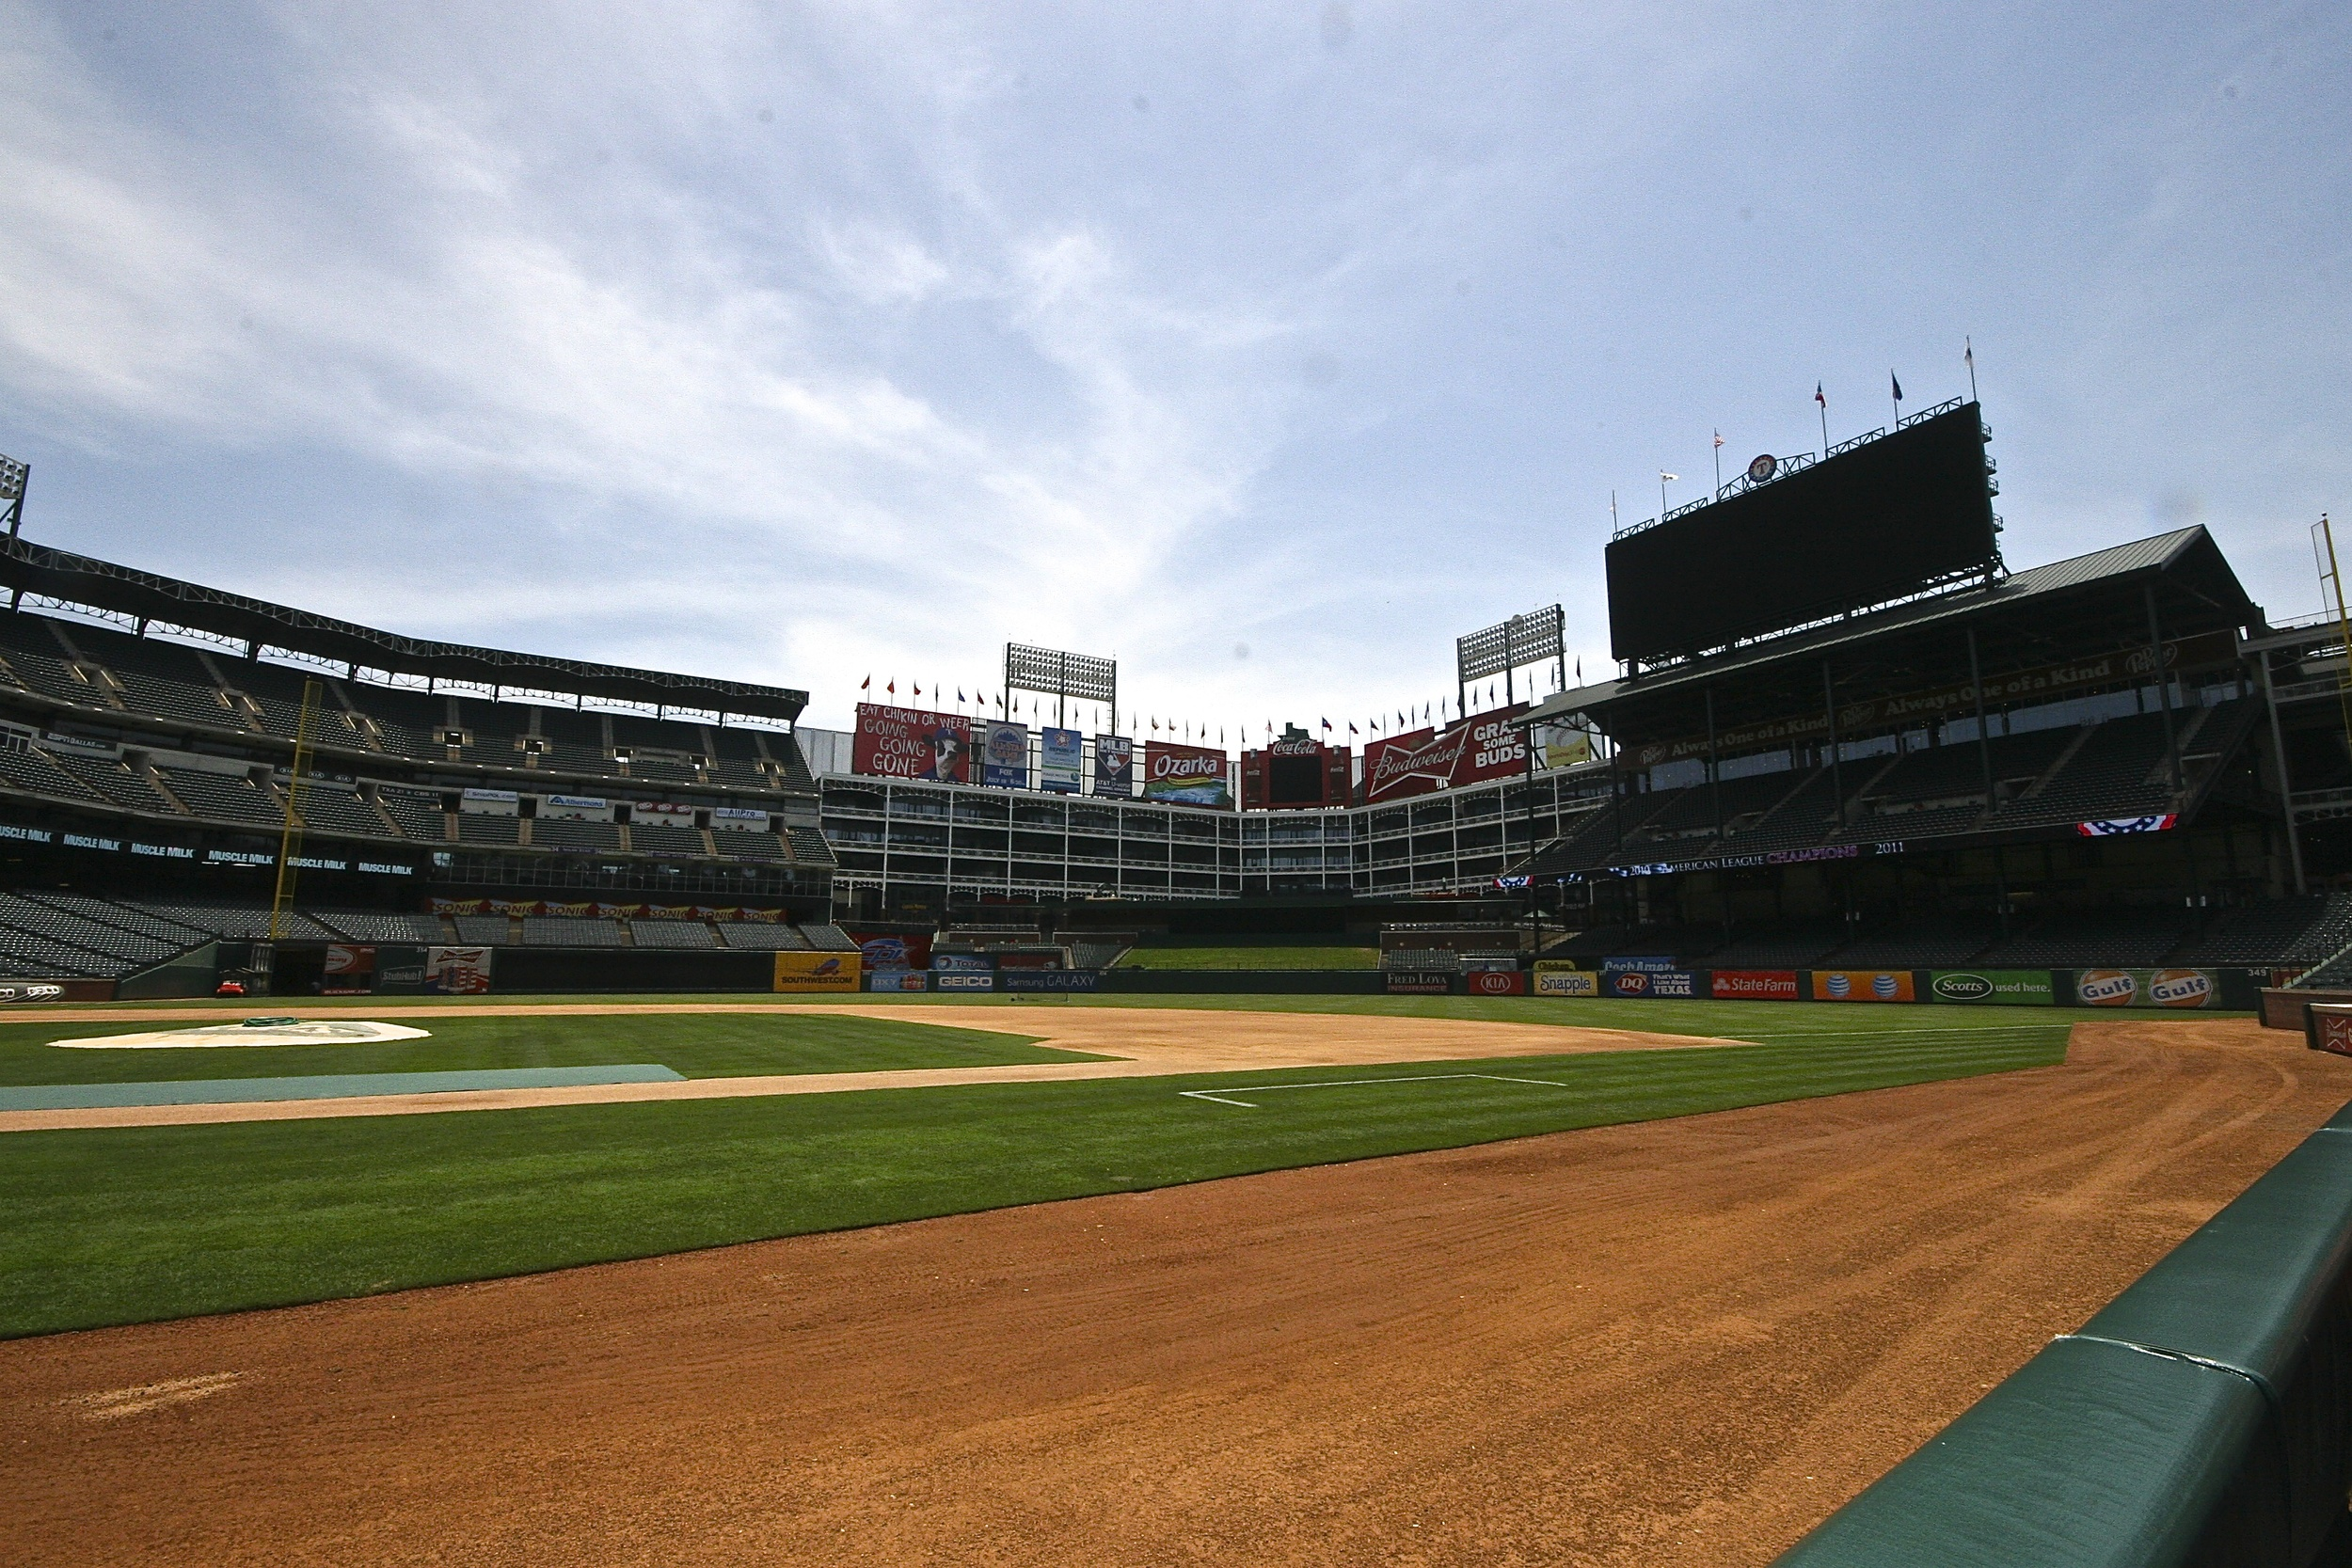 View from the dugout